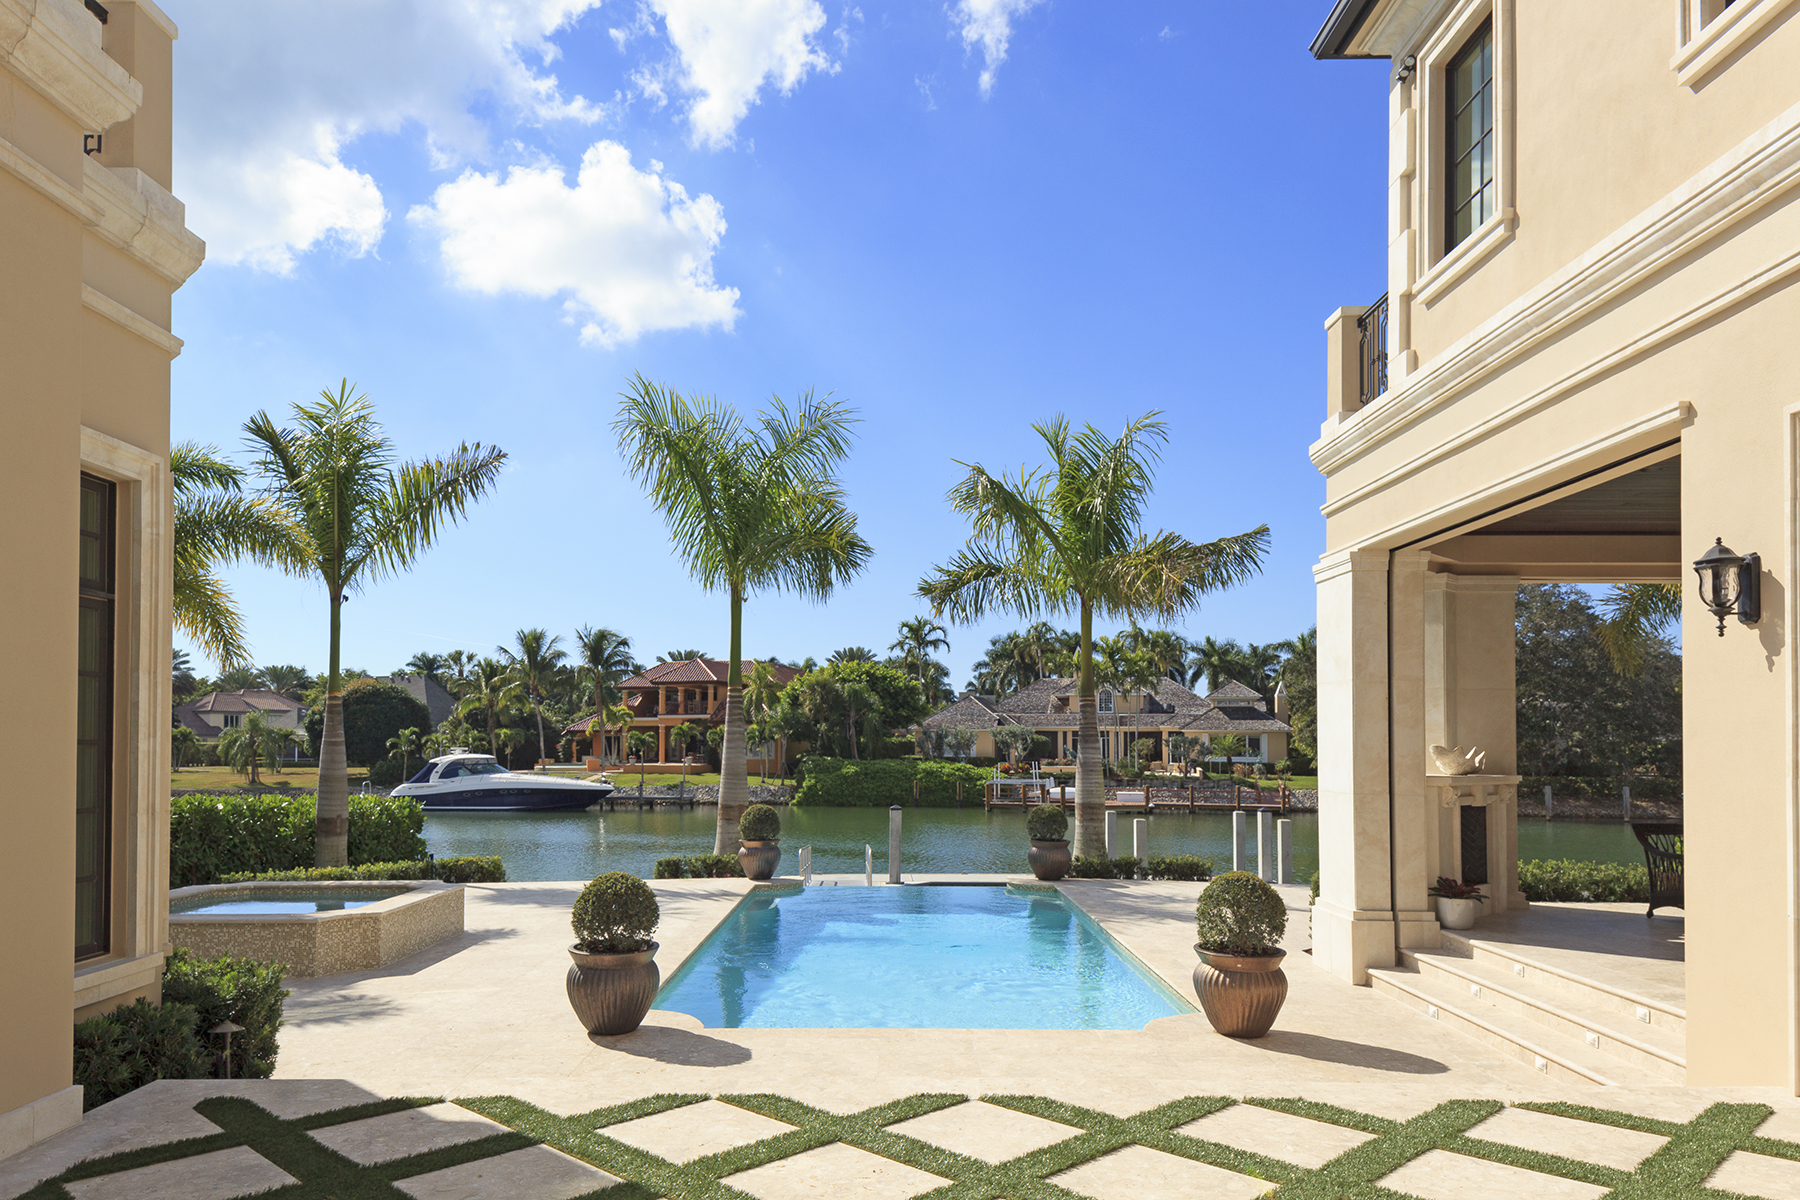 Single Family Home for Sale at PORT ROYAL 3250 Gin Ln Naples, Florida 34102 United States